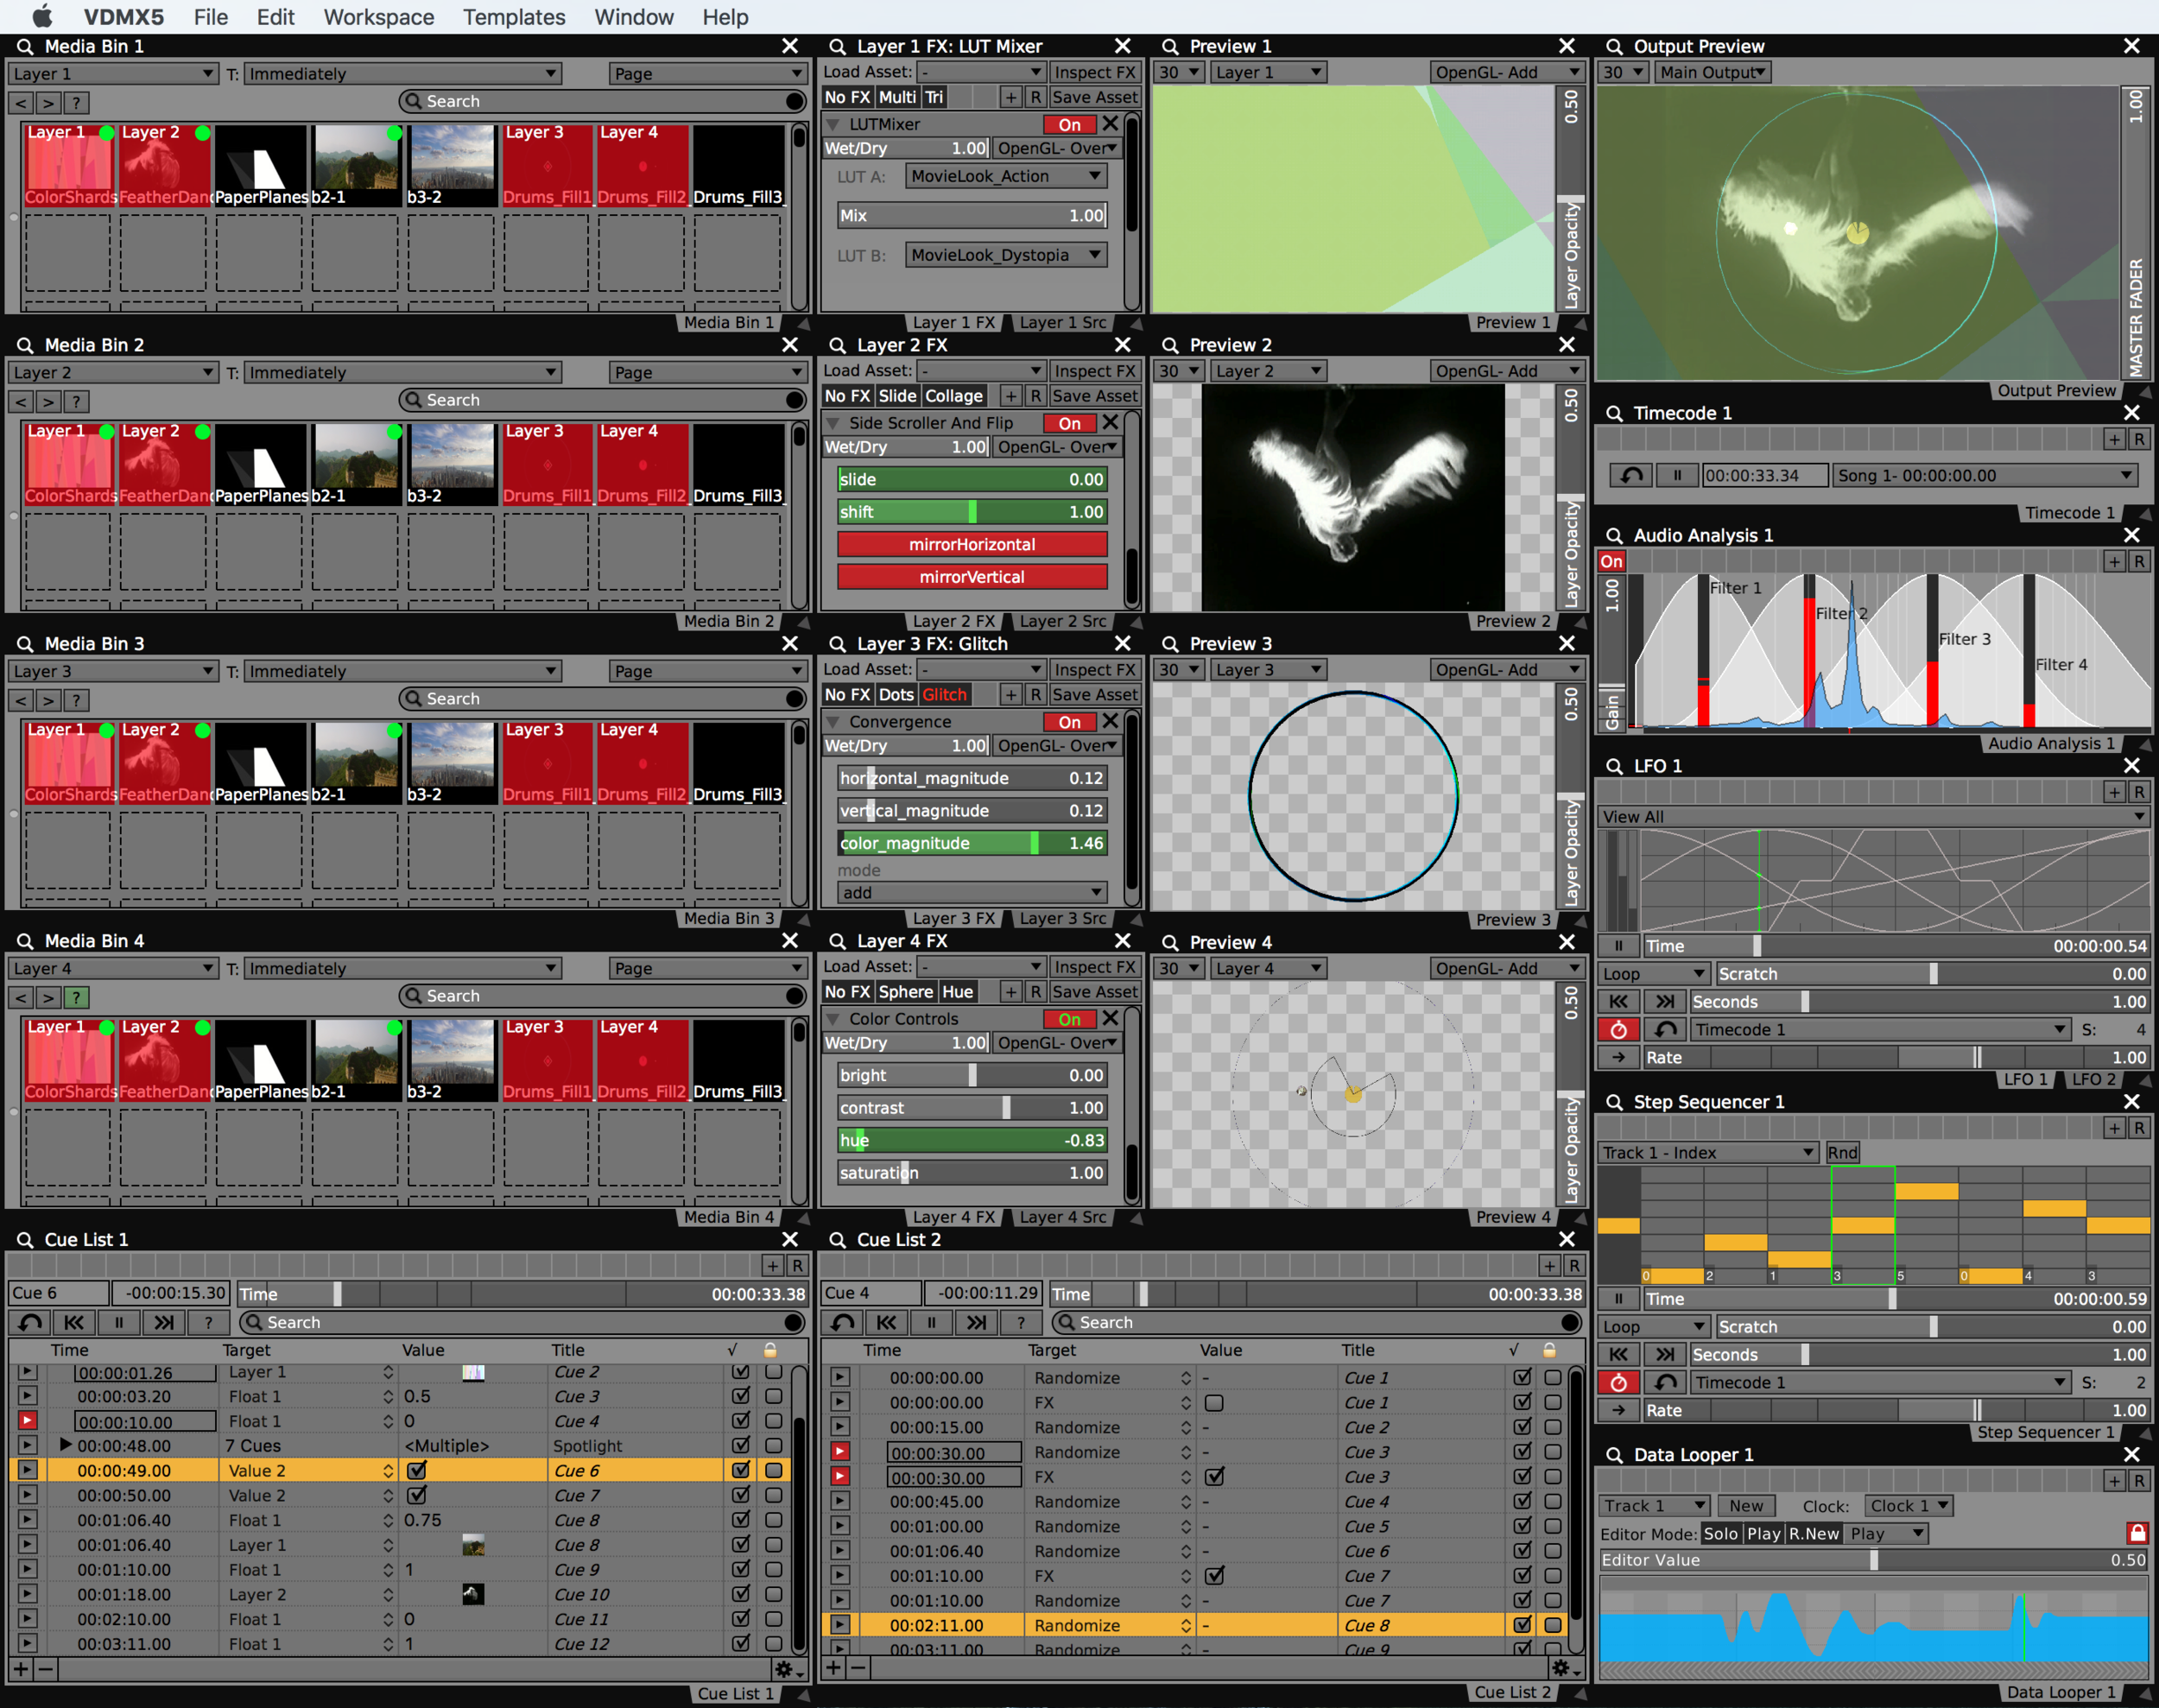 New Timecode, Data Looper and Cue List plugins added to existing project.